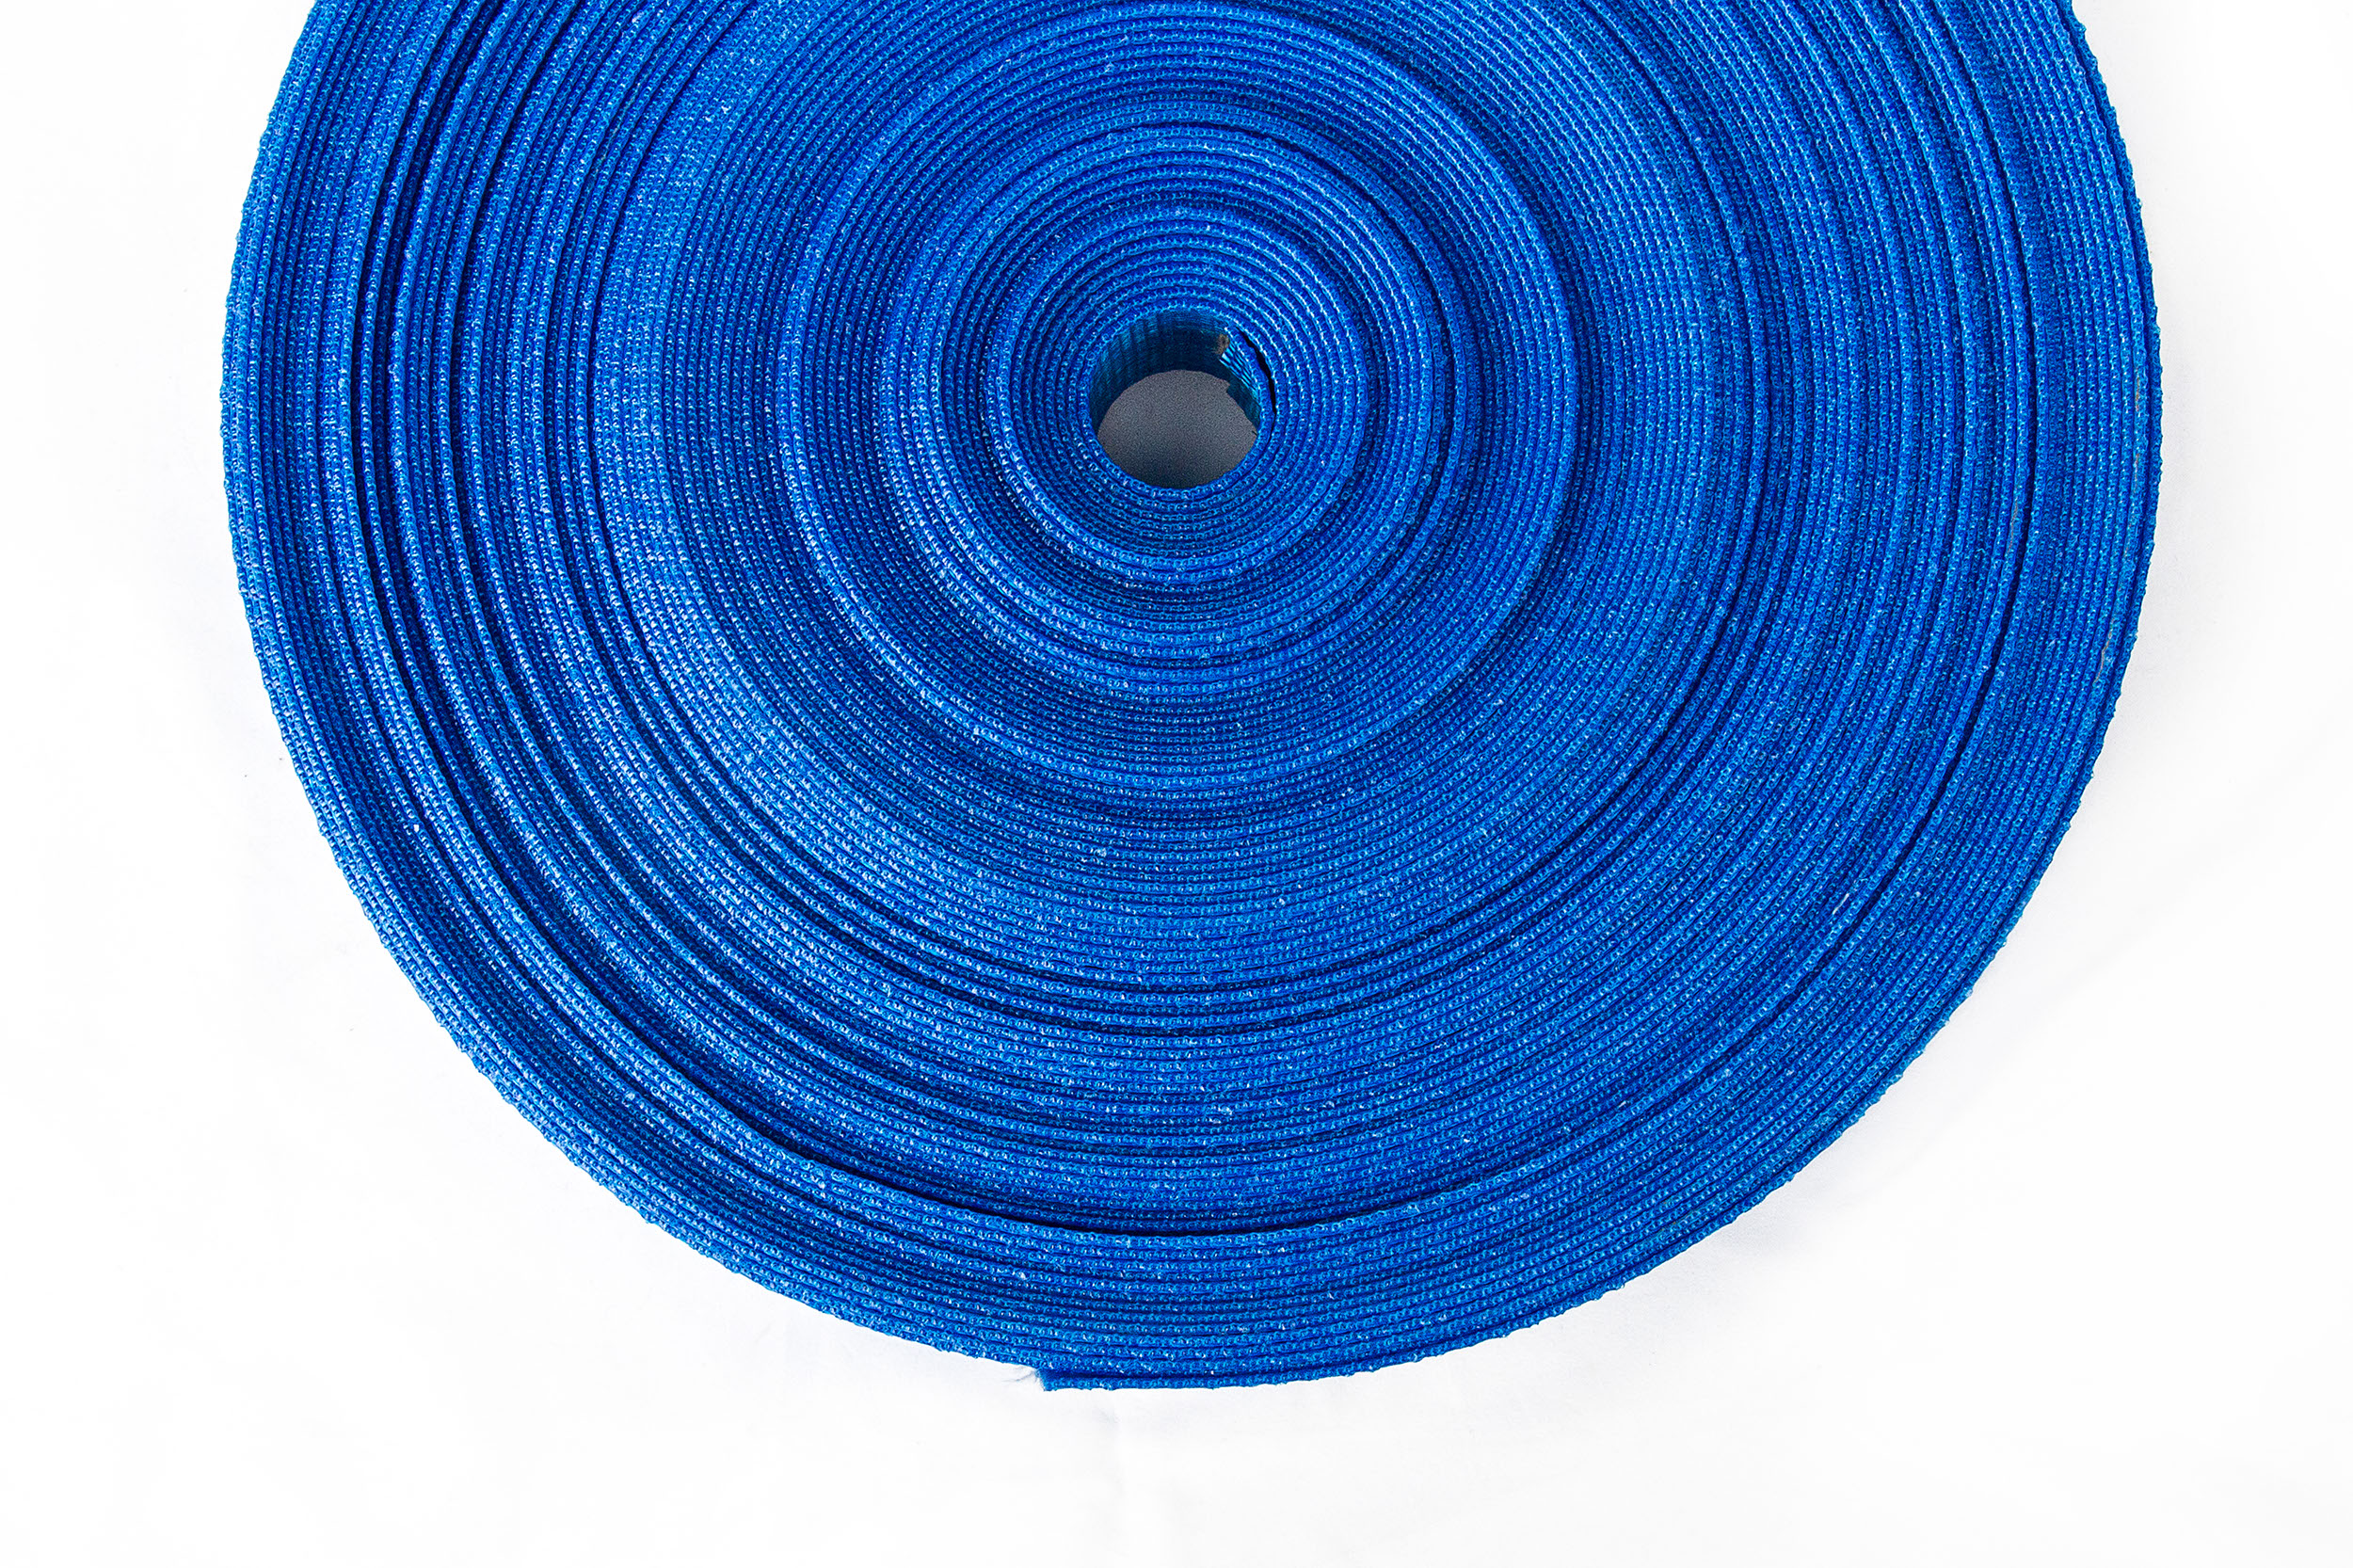 Weldable-Tape-Blue-1.jpg